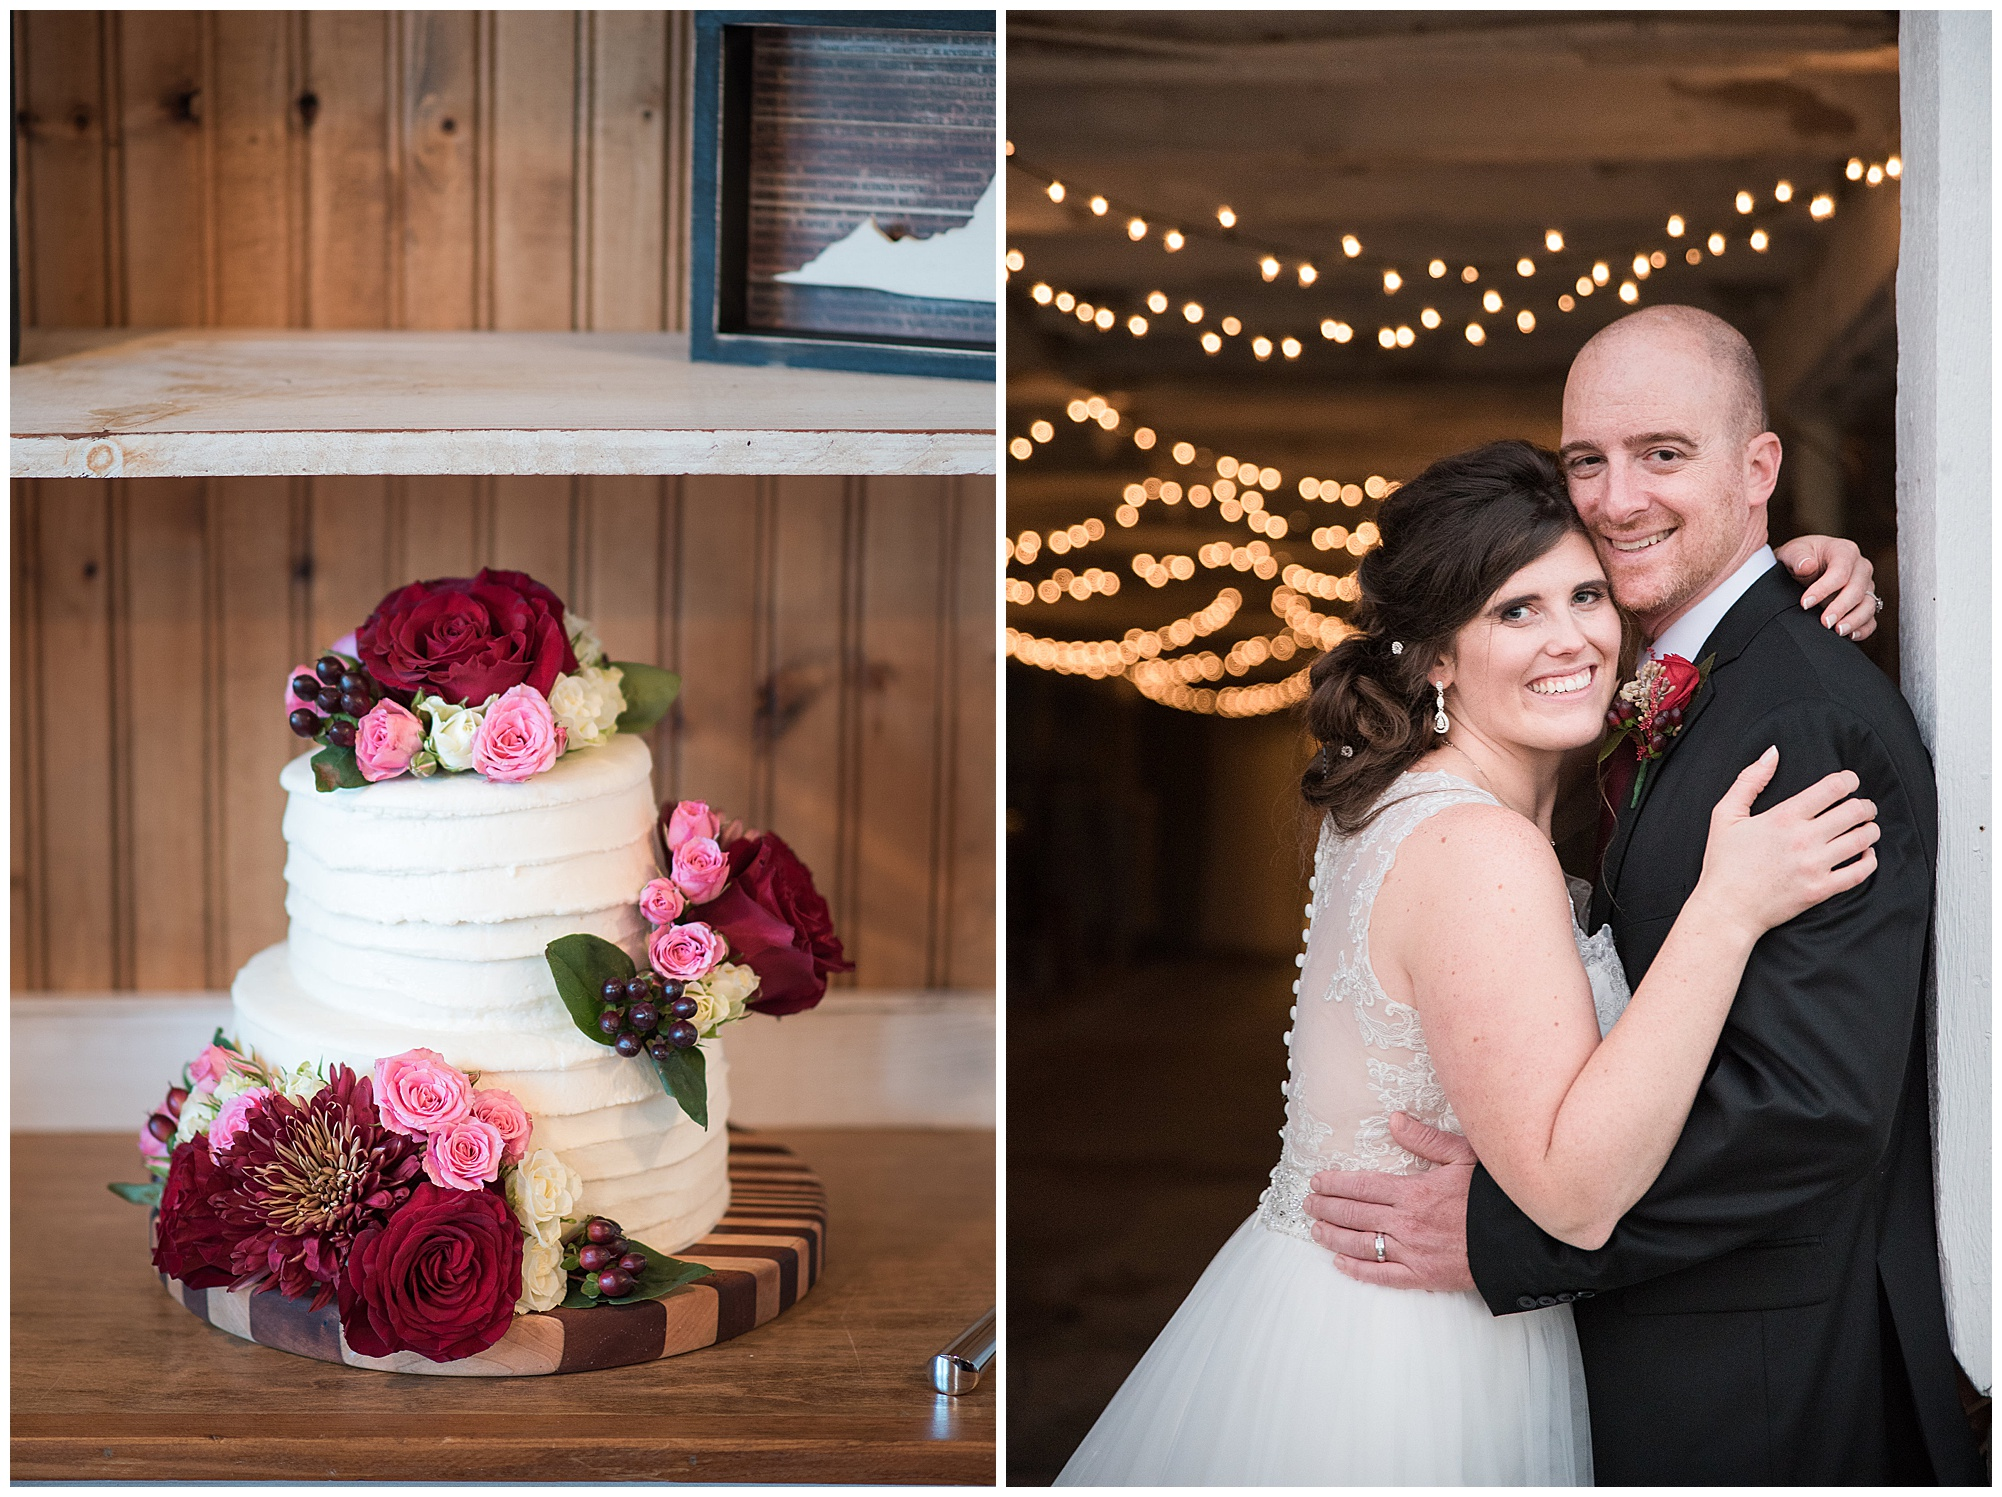 wedding photos at covered bridge inn bed and breakfast farm in lewes delaware. historic wedding barn venue on the eastern shore. fall wedding in november with rustic decor theme. photo of wedding cake with pink and red flowers and bride and groom hugging in barn with twinkly lights.